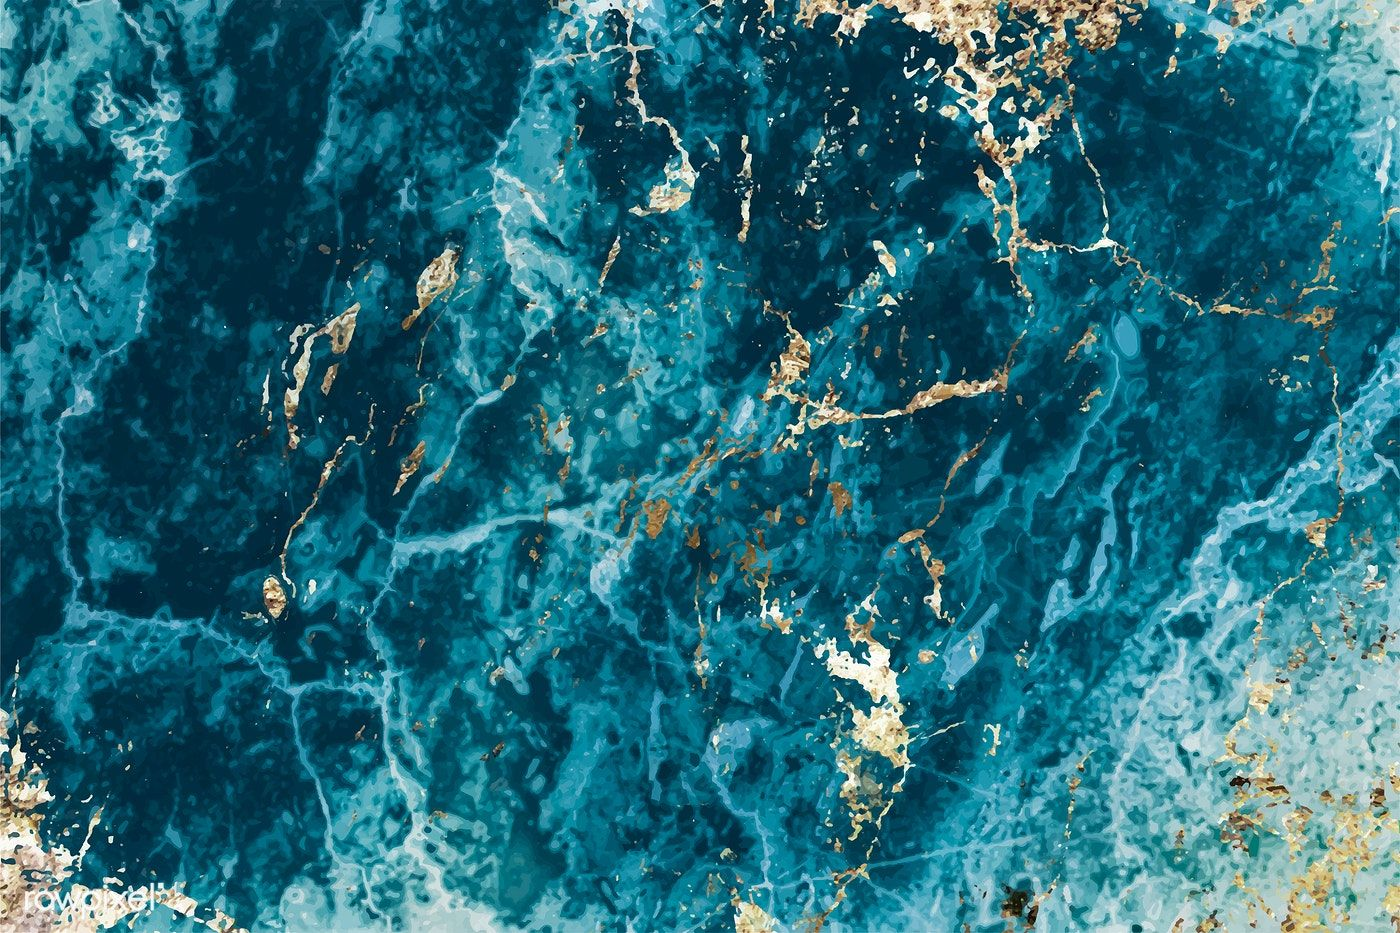 Blue And Gold Marble Textured Background Vector Free Image By Rawpixel Com Eyeeyeview Marble Texture Textured Background Gold Marble